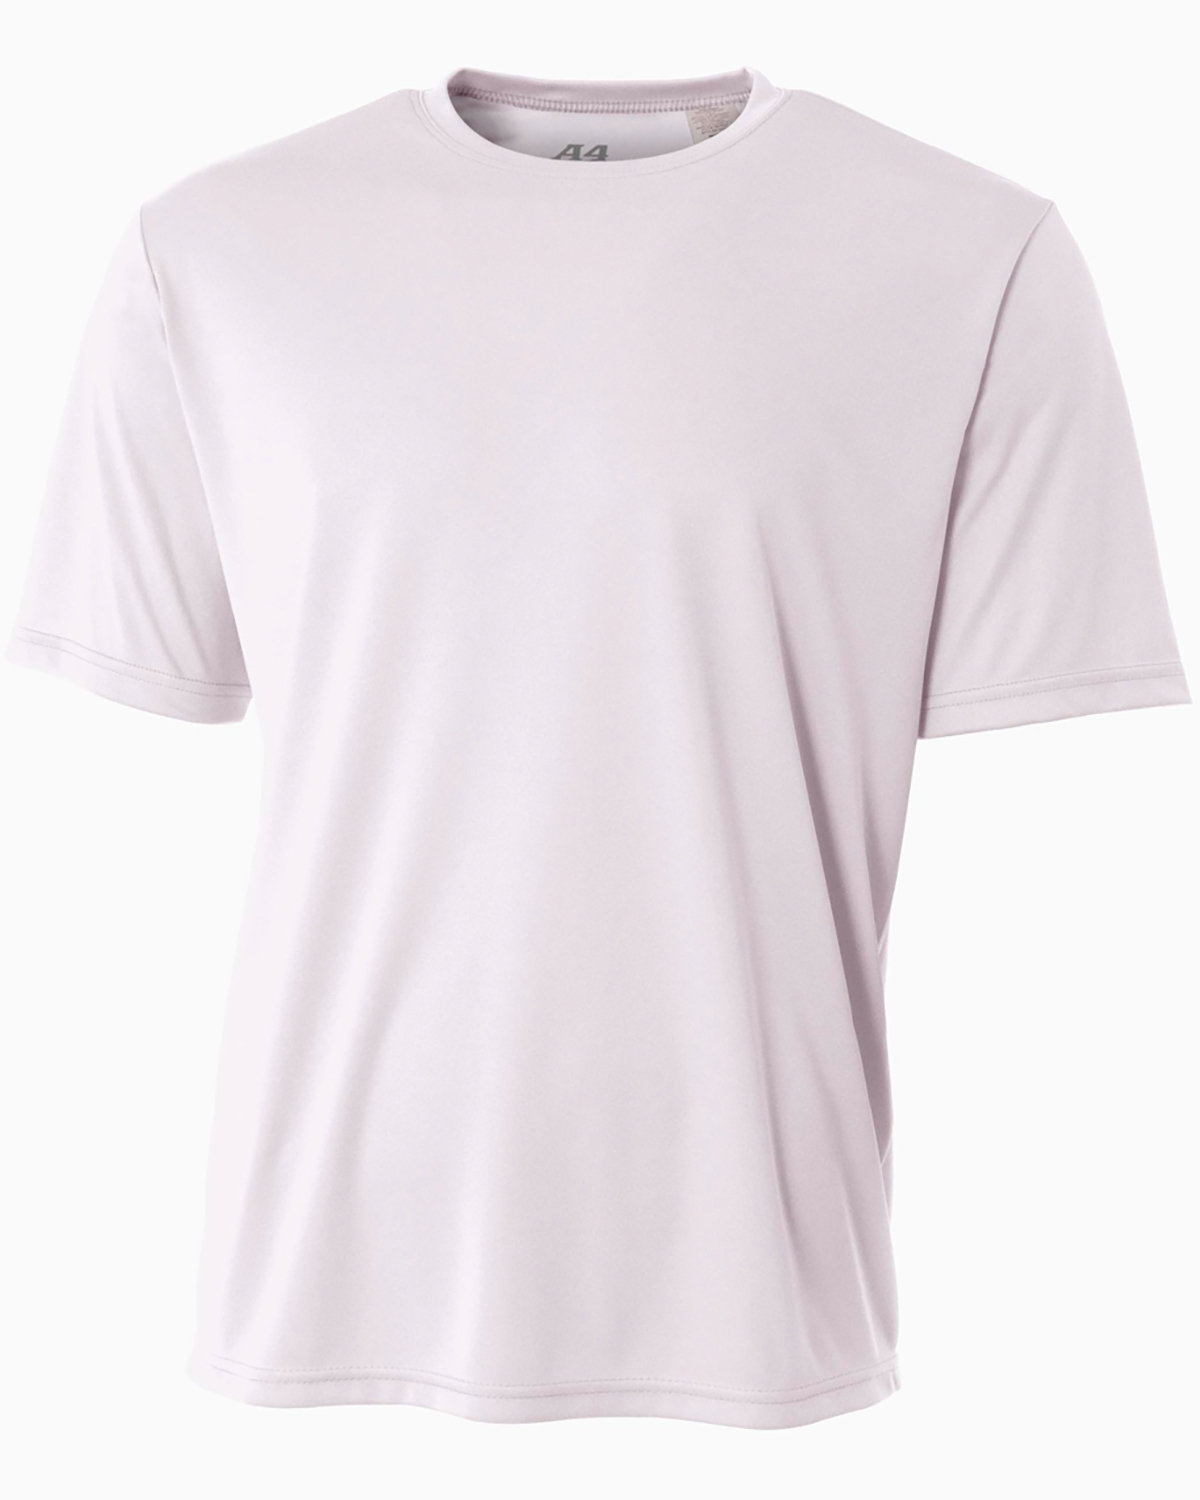 A4 Youth Cooling Performance T-Shirt WHITE